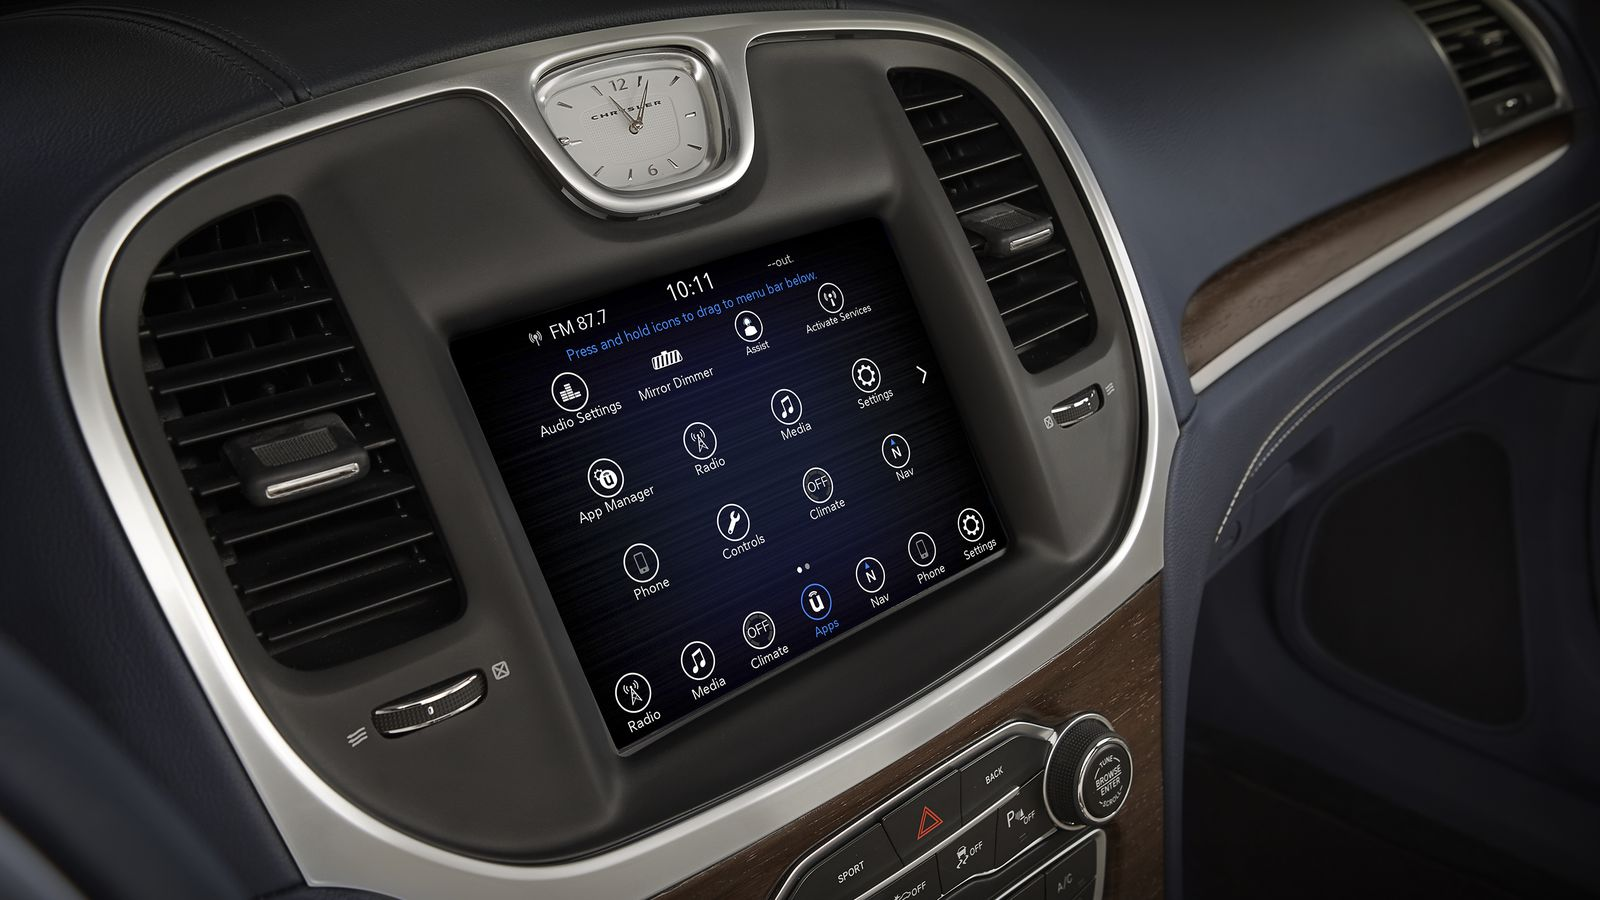 Google and Chrysler use Android to revamp the in-car touchscreen